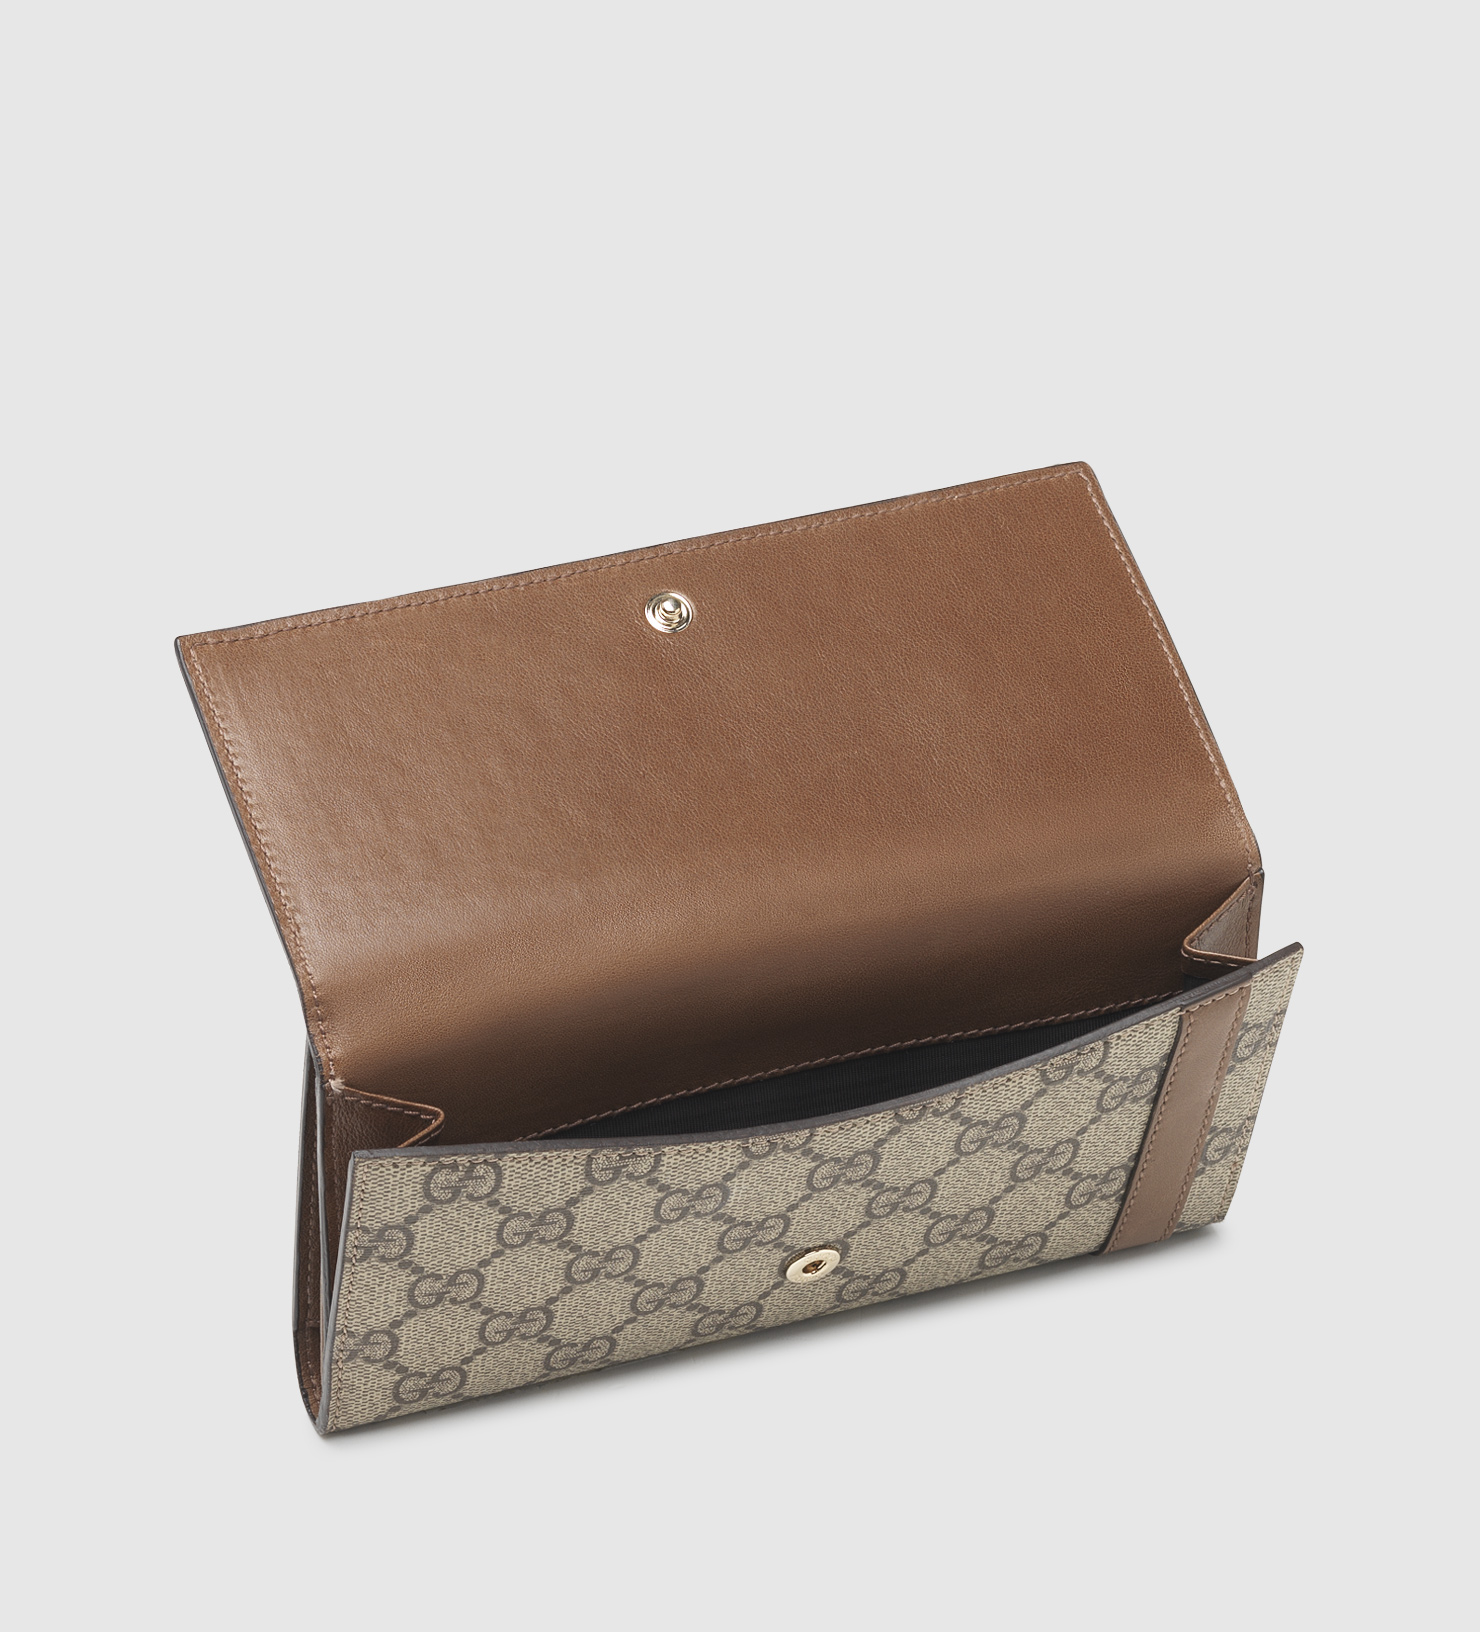 f8608ae2248aab Gucci Nice Gg Supreme Canvas Continental Wallet in Brown - Lyst